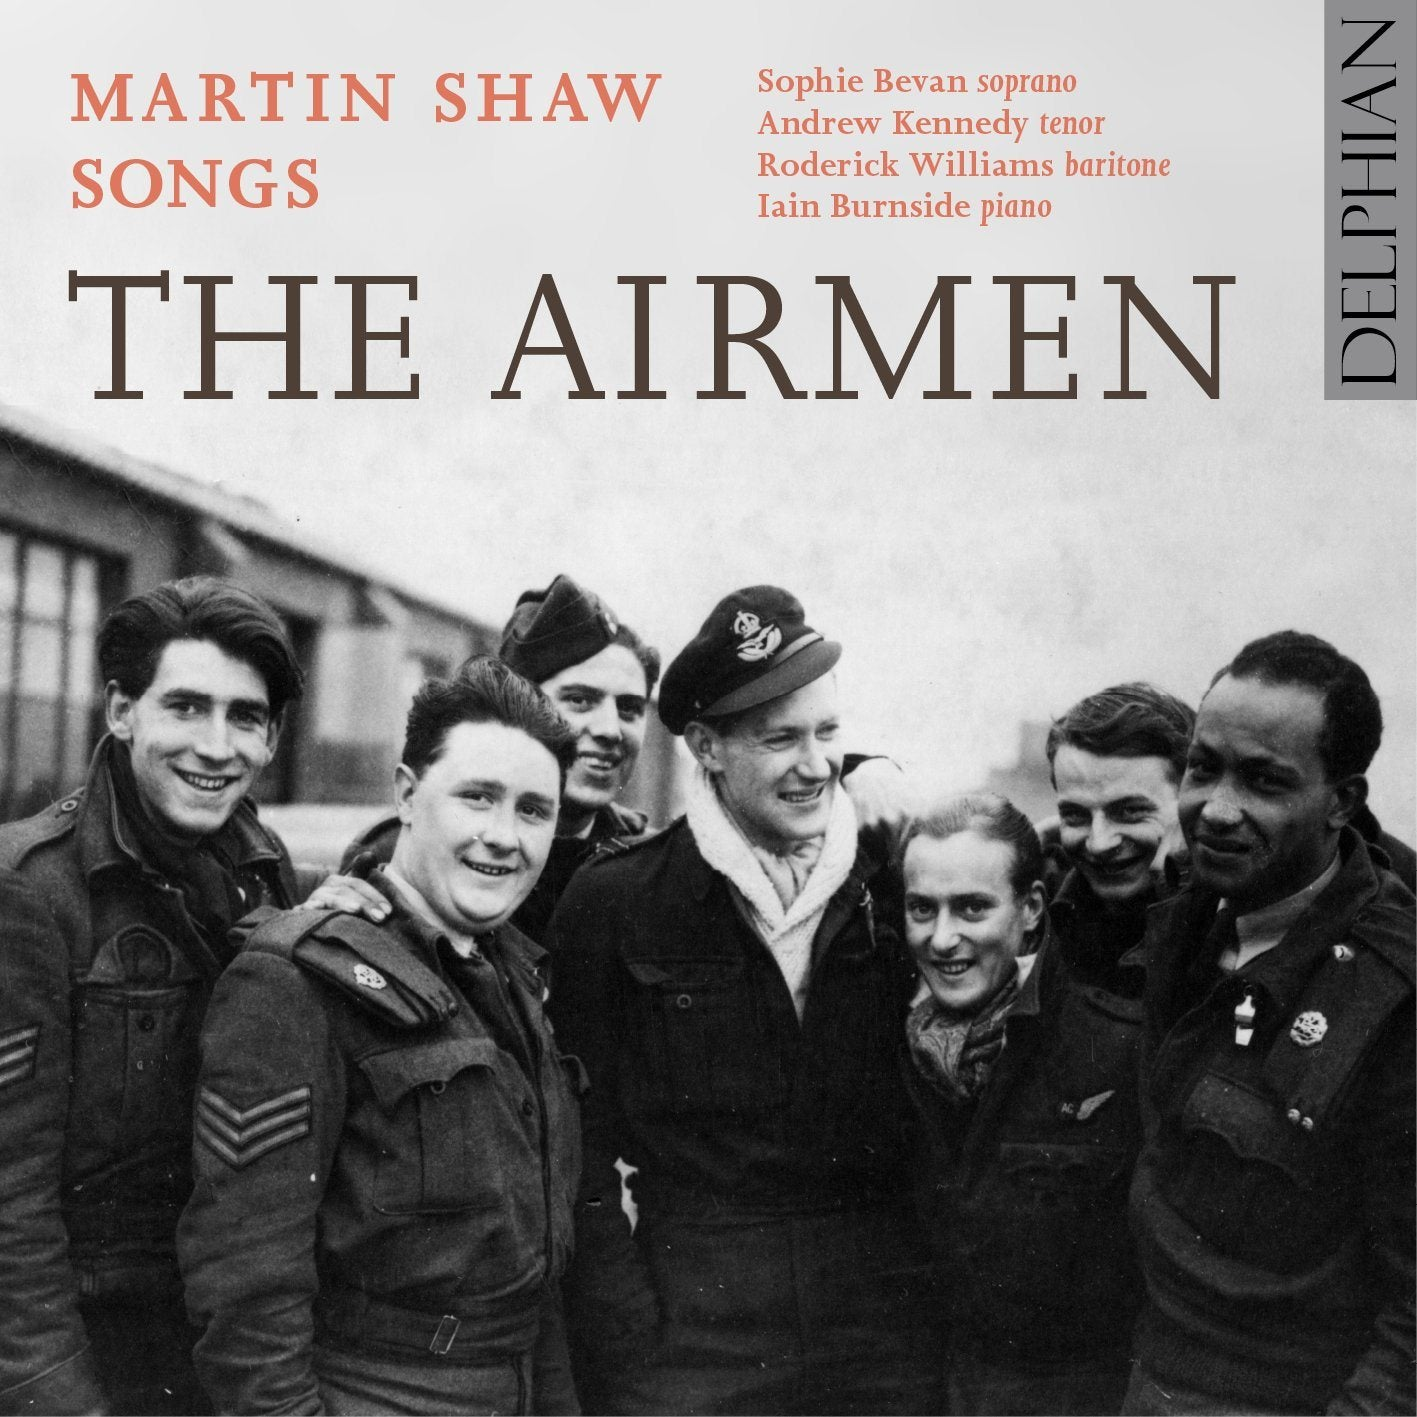 The Airmen: songs by Martin Shaw CD Delphian Records